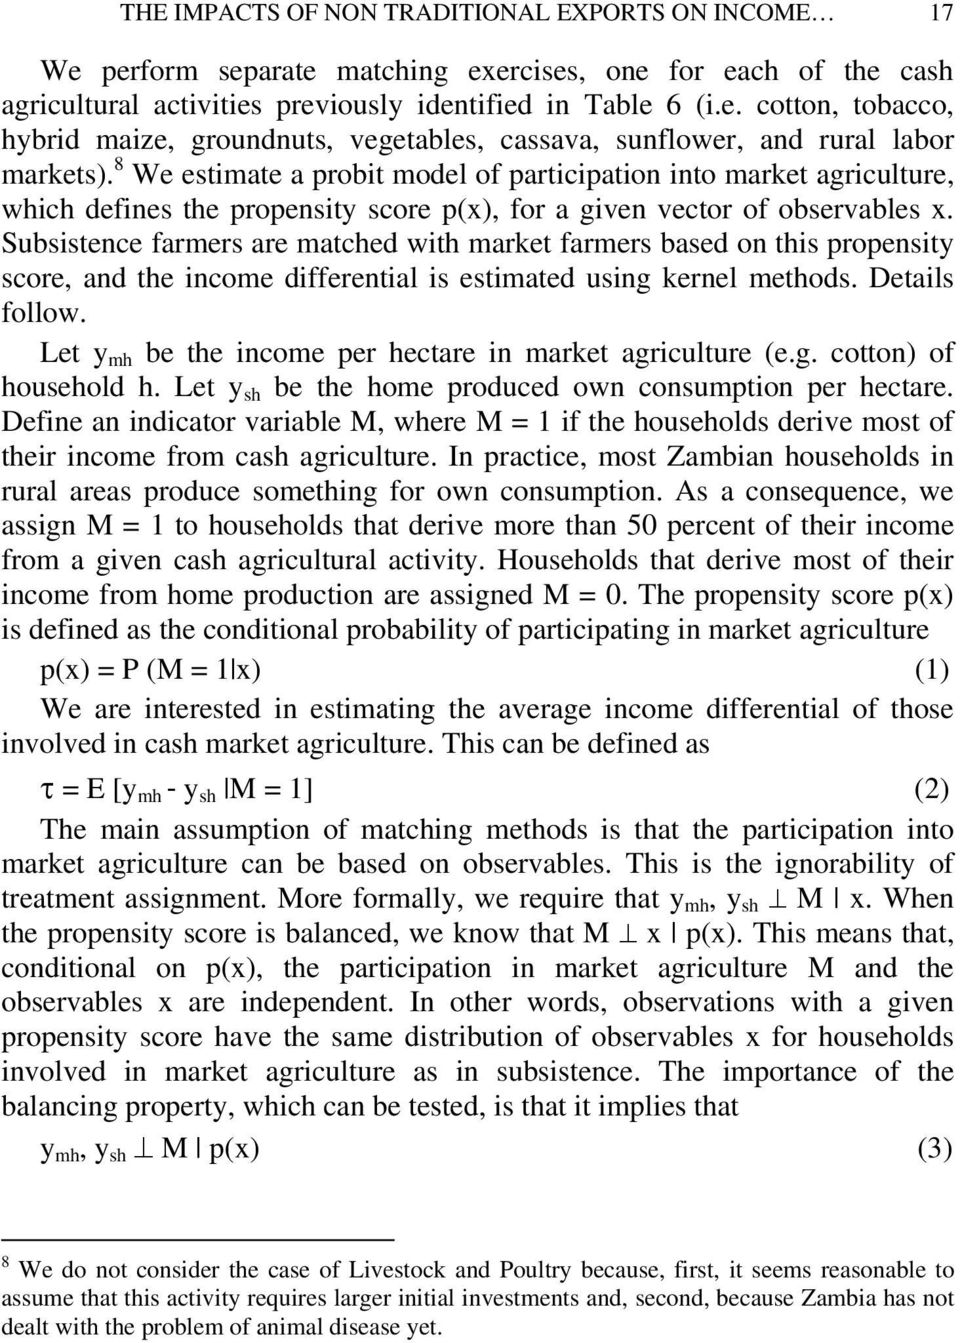 Subsistence farmers are matched with market farmers based on this propensity score, and the income differential is estimated using kernel methods. Details follow.